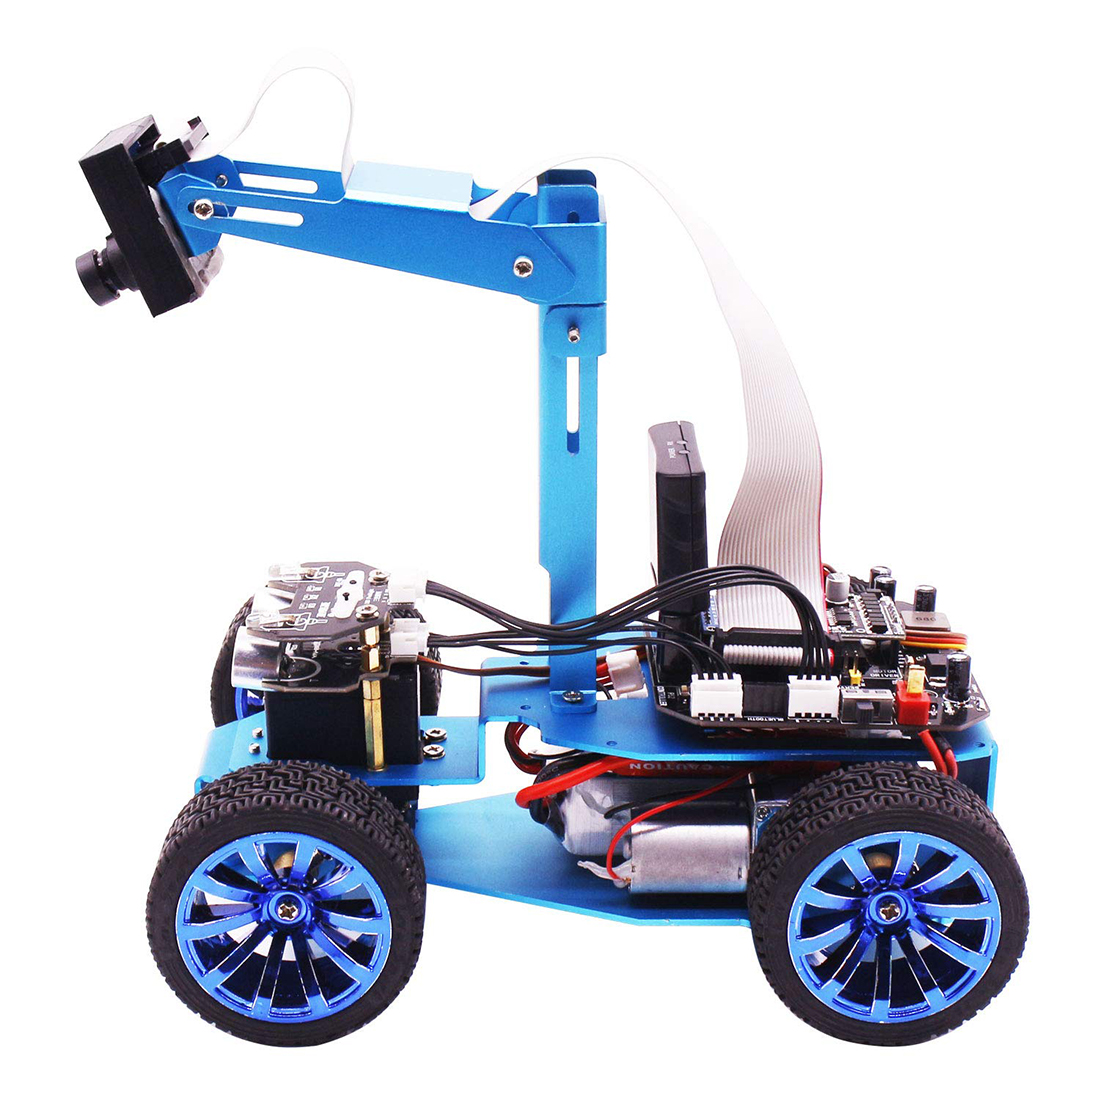 STM32 Visual Robot OV7670 Camera Tracking OLED Screen Independent Steering Robotics High-Power Motor Creative Gift 2